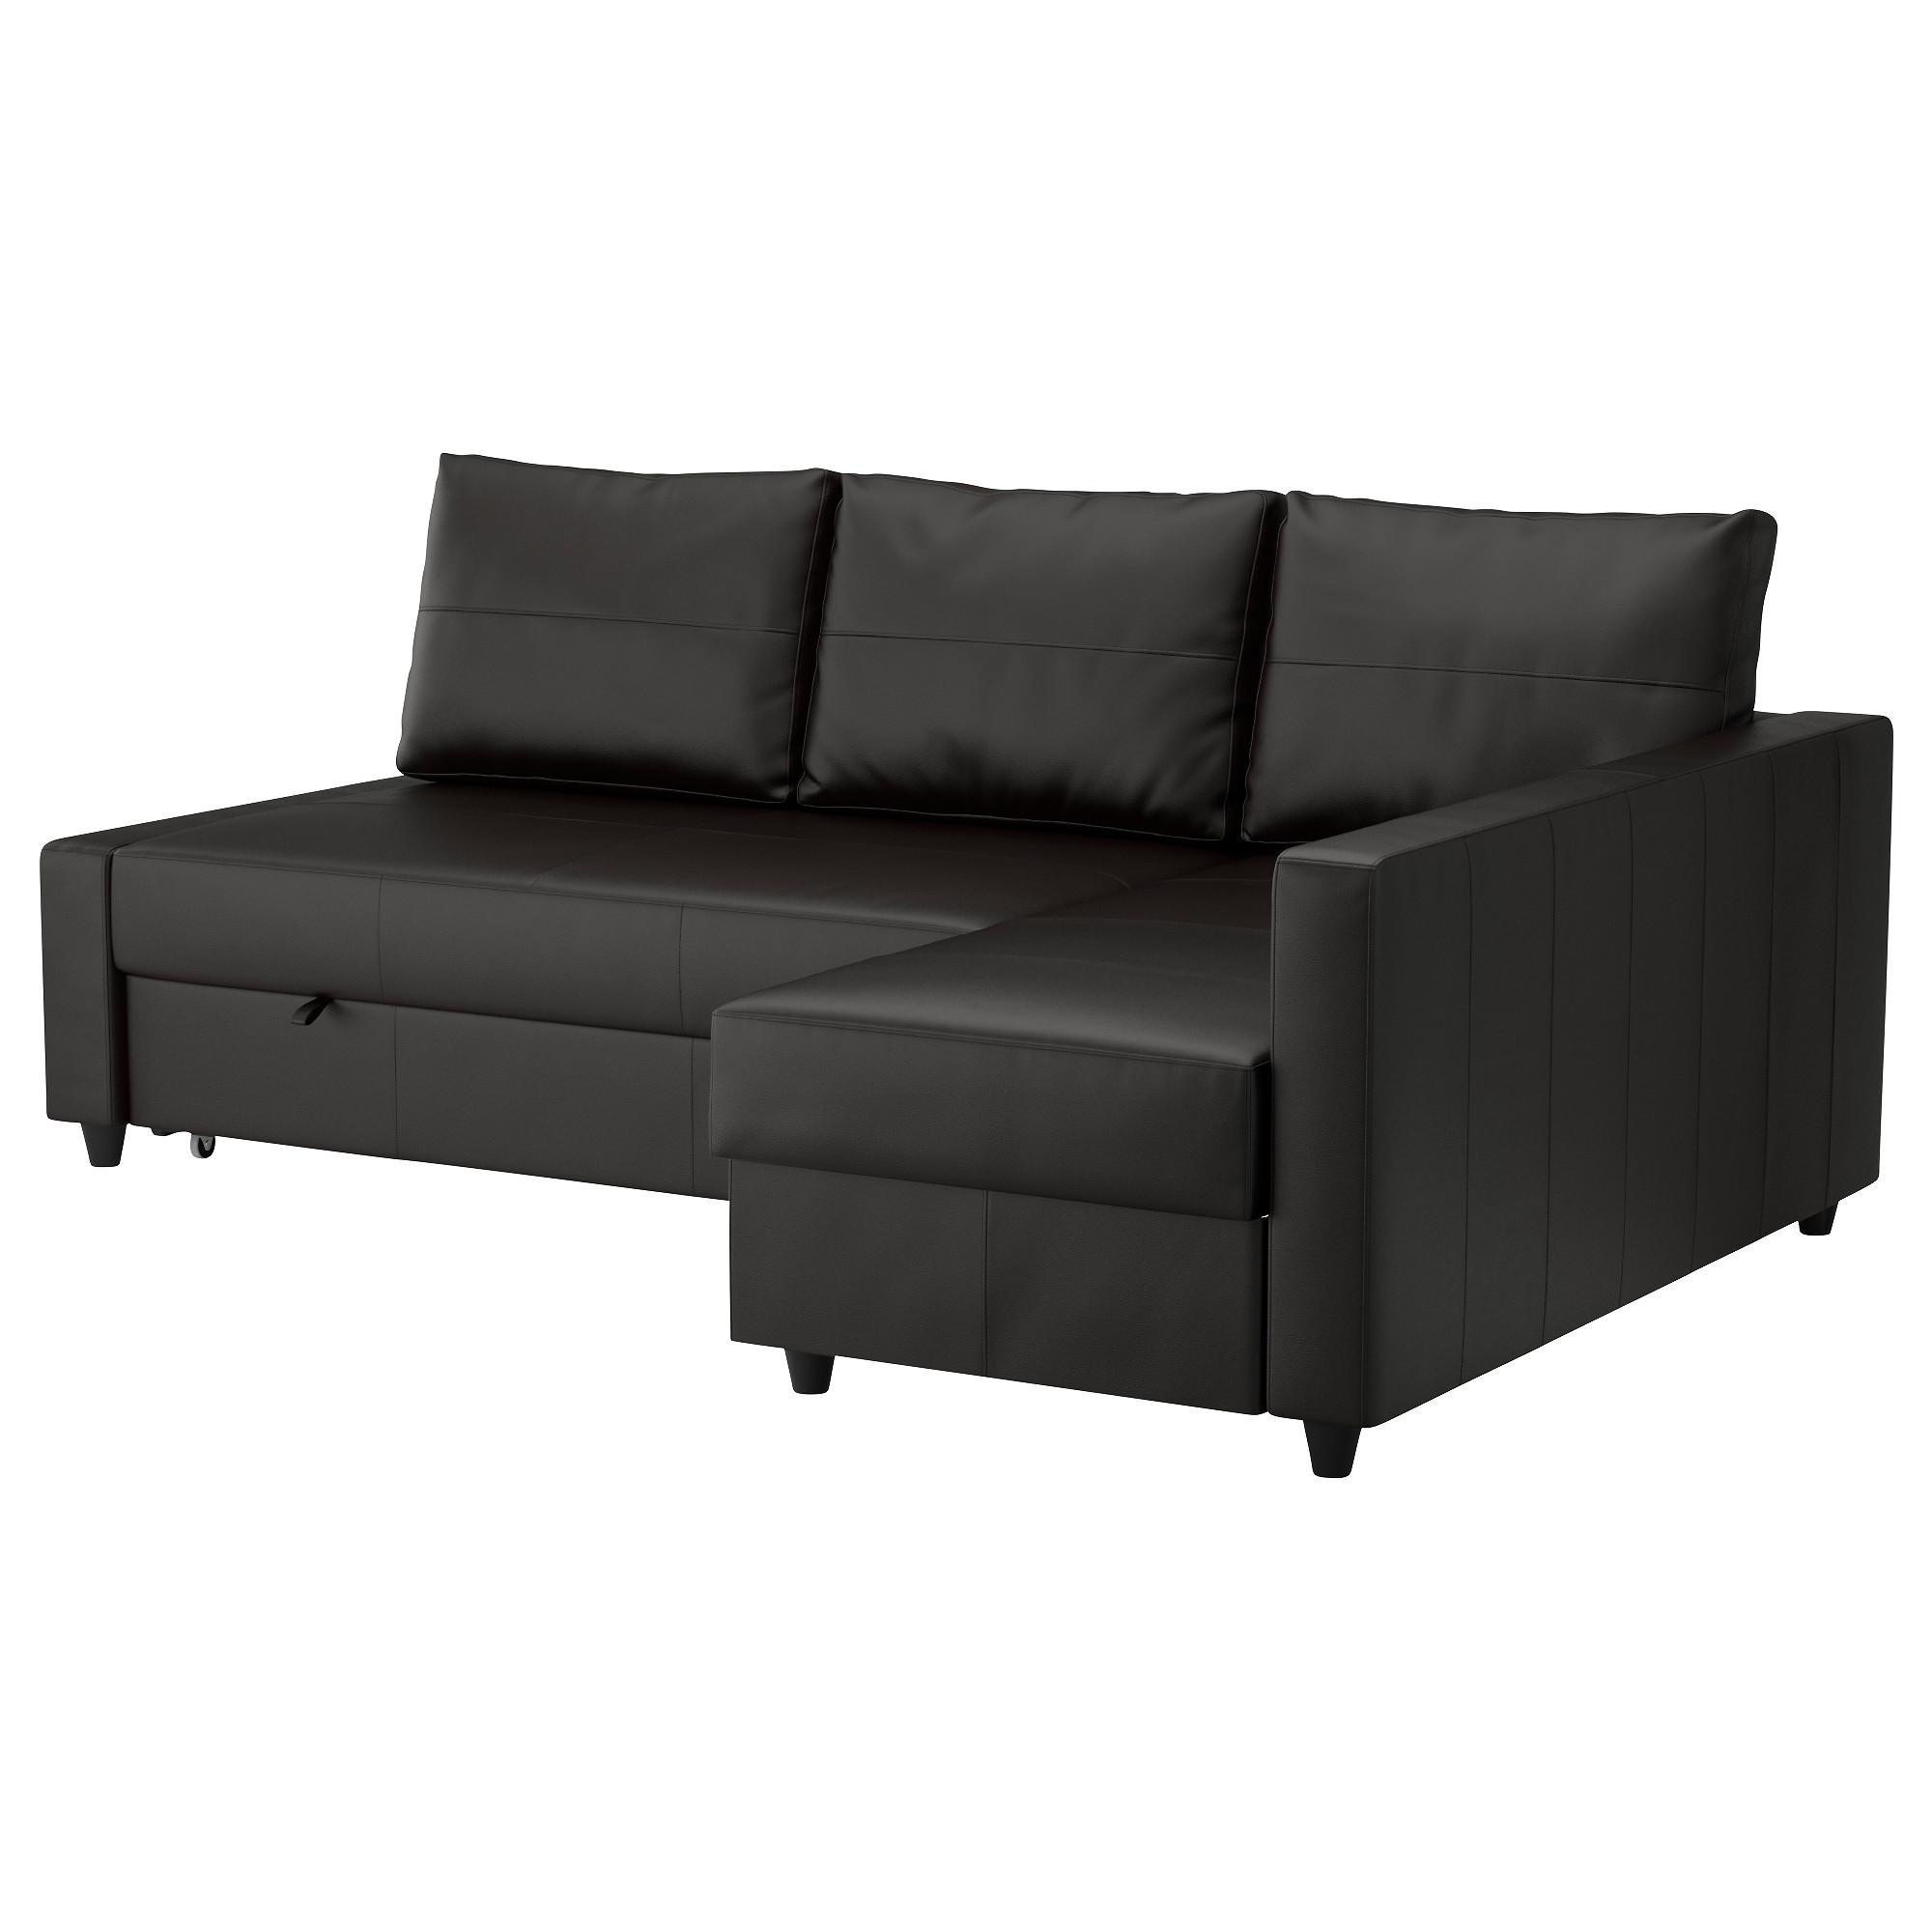 Sofas: Ikea Couch Bed With Cool Style To Match Your Space Within Crate And Barrel Sofa Sleepers (Image 19 of 20)